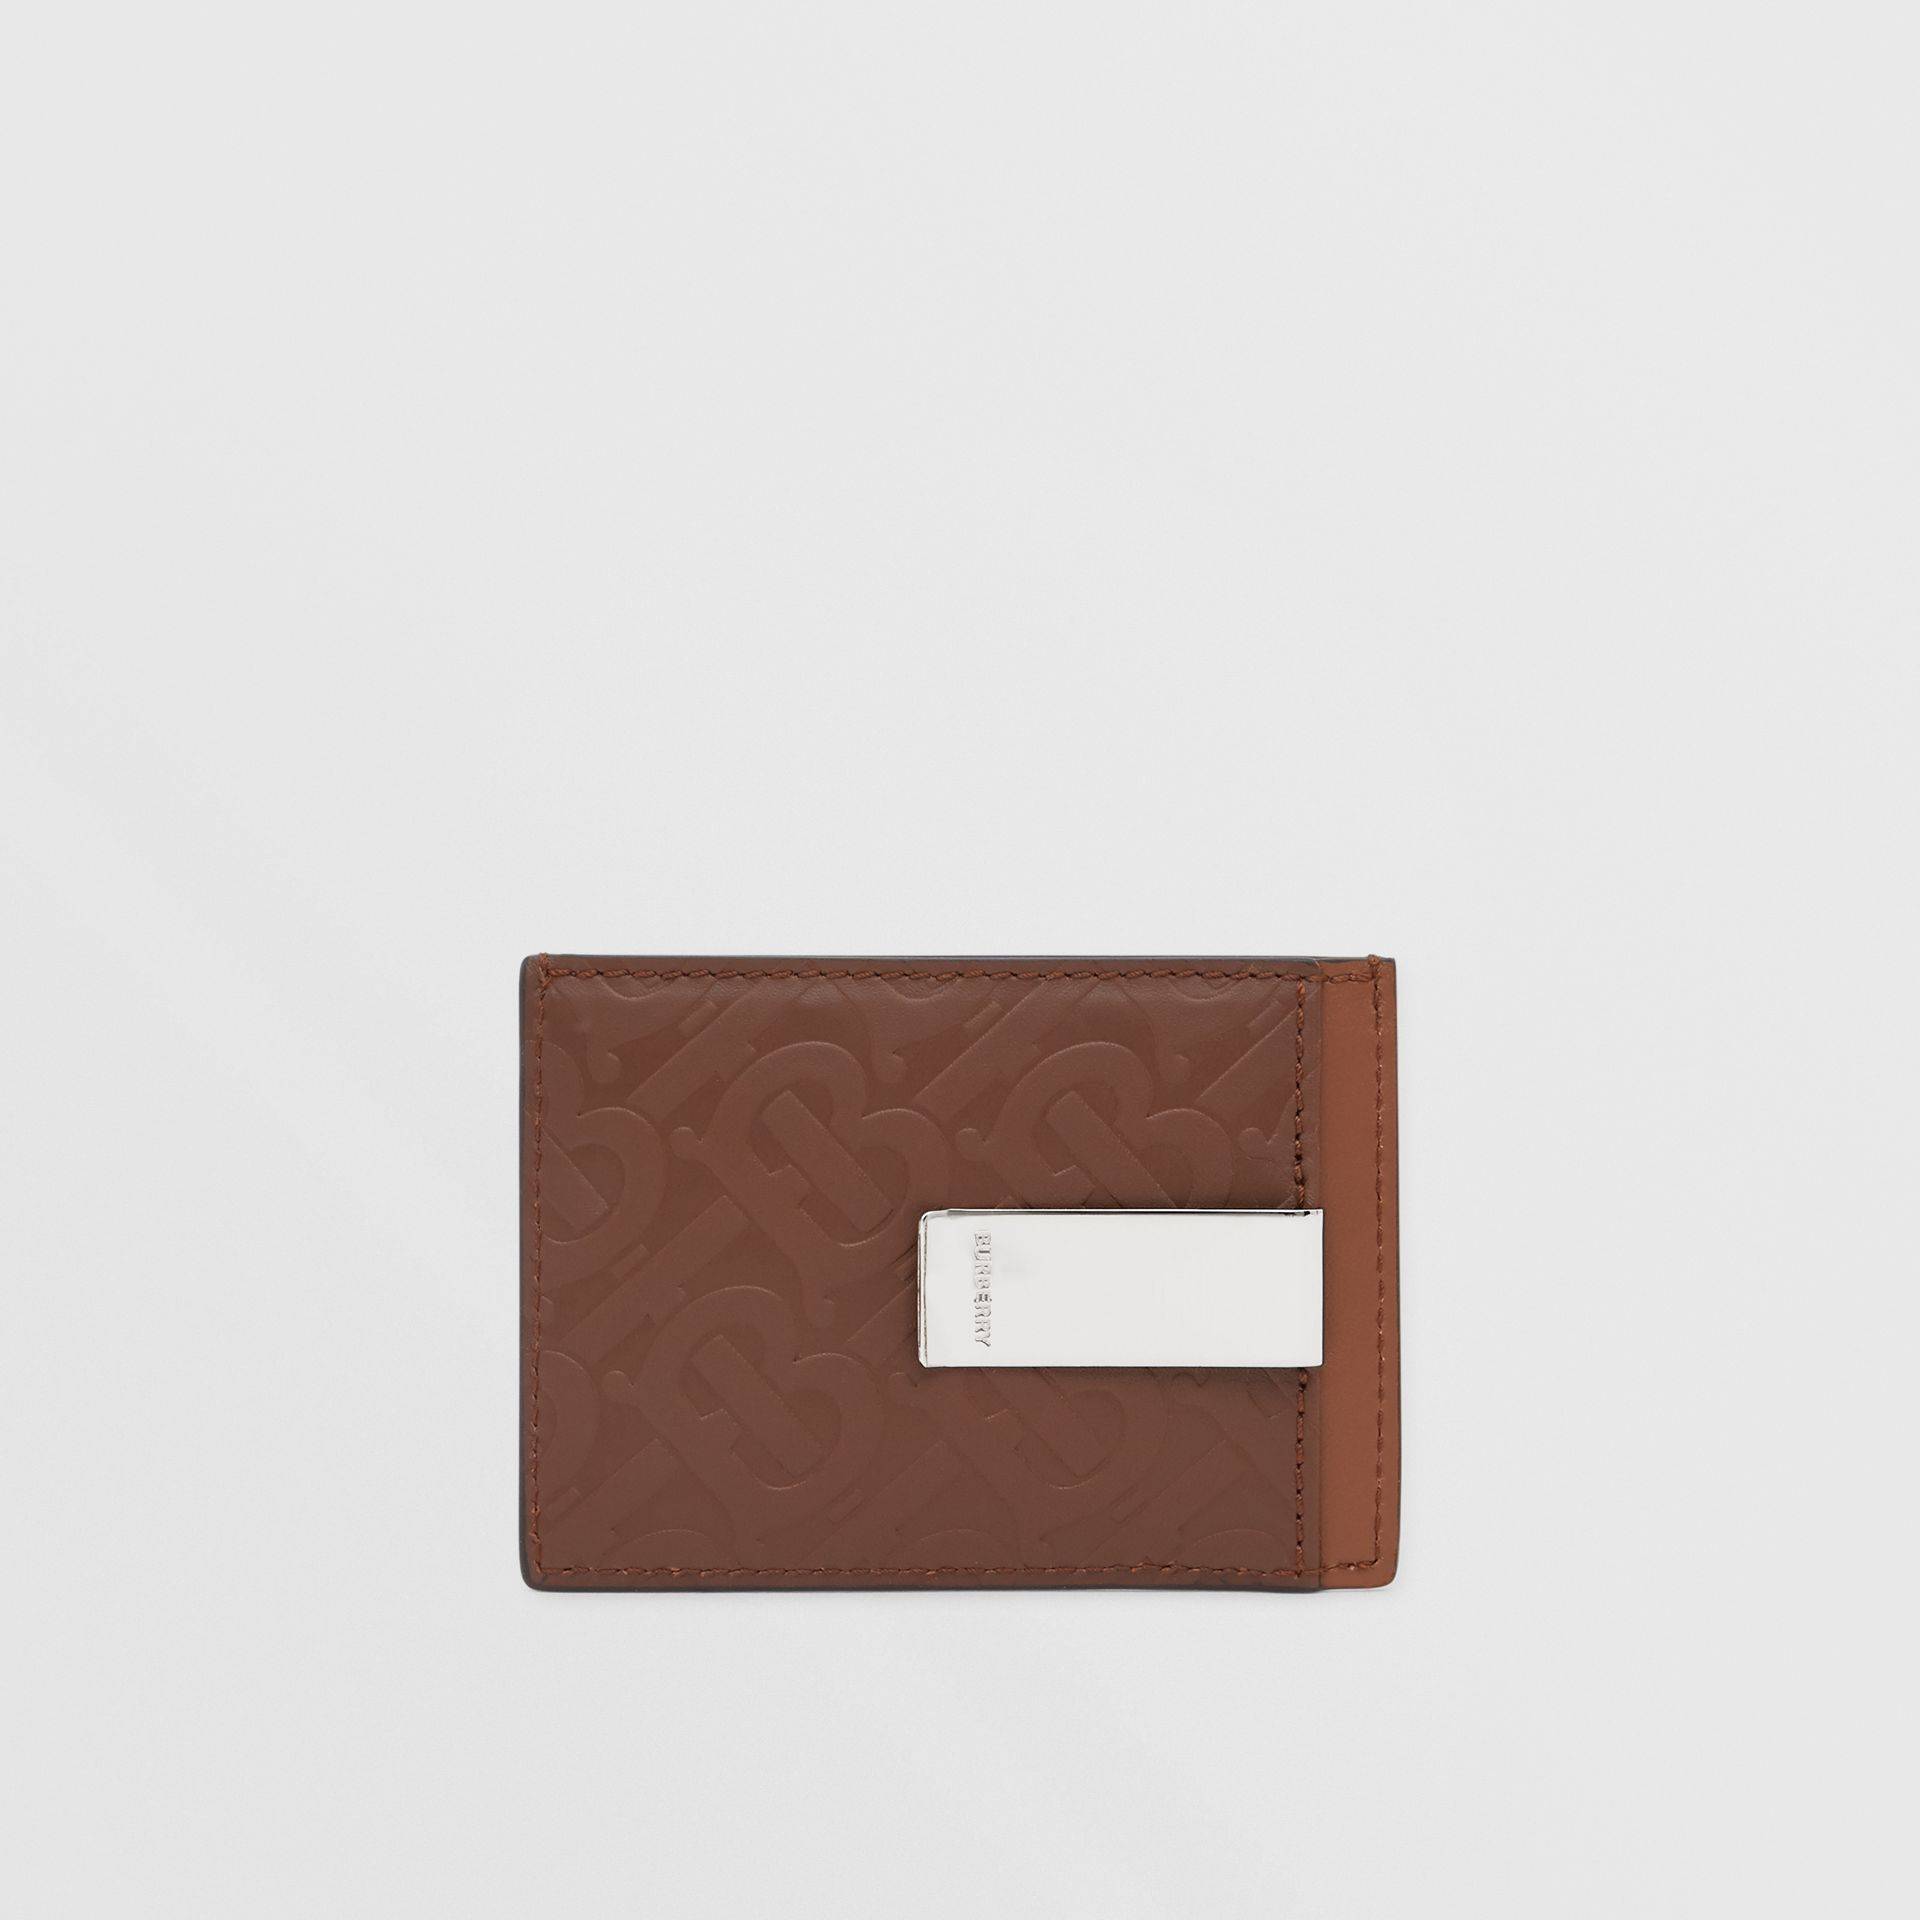 Monogram Leather Money Clip Card Case in Dark Tan - Men | Burberry United States - gallery image 4